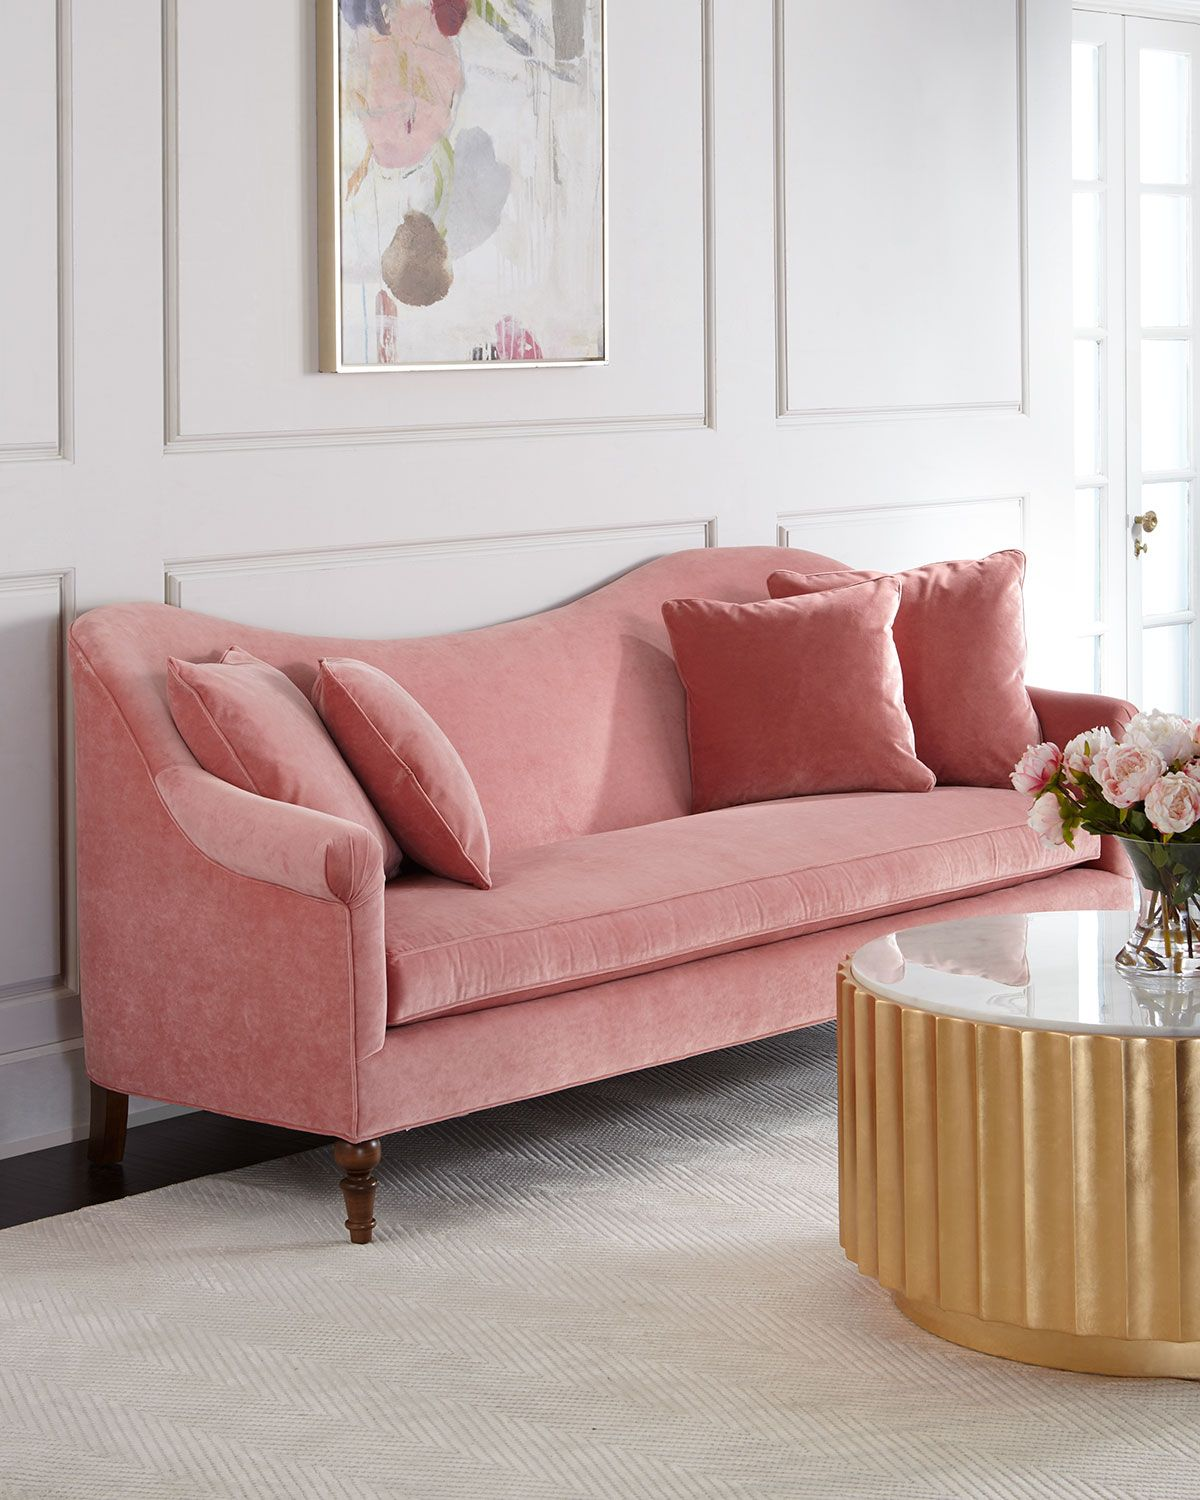 Magnificent Cerise Velvet Sofa 93 Pink Velvet Sofa Pink Sofa Sofa Design Dailytribune Chair Design For Home Dailytribuneorg